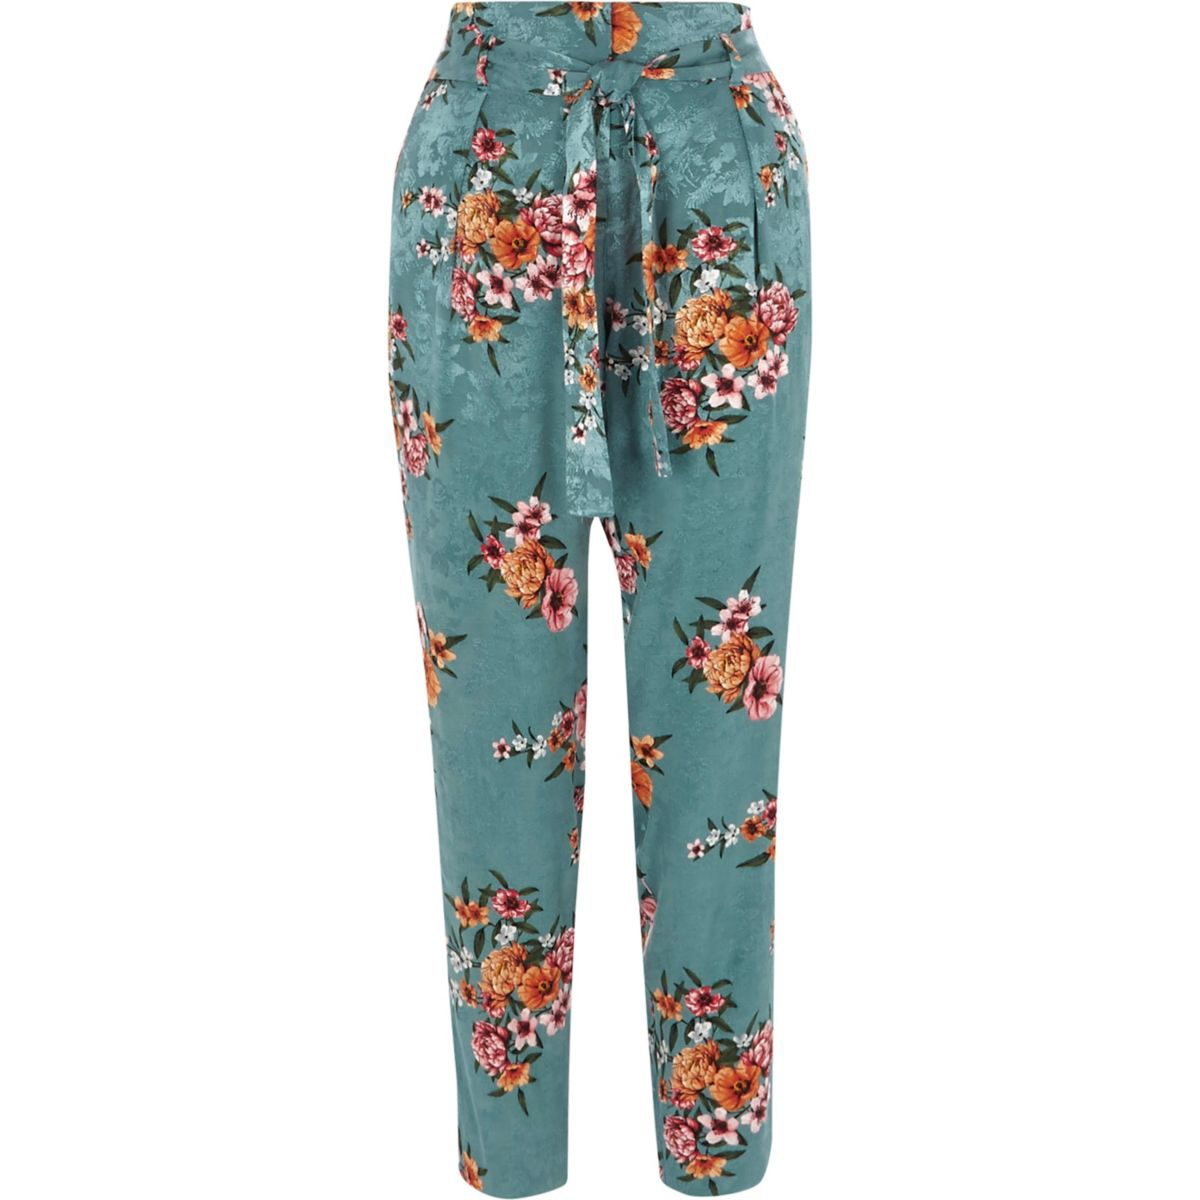 Teal blue floral jacquard tapered pants